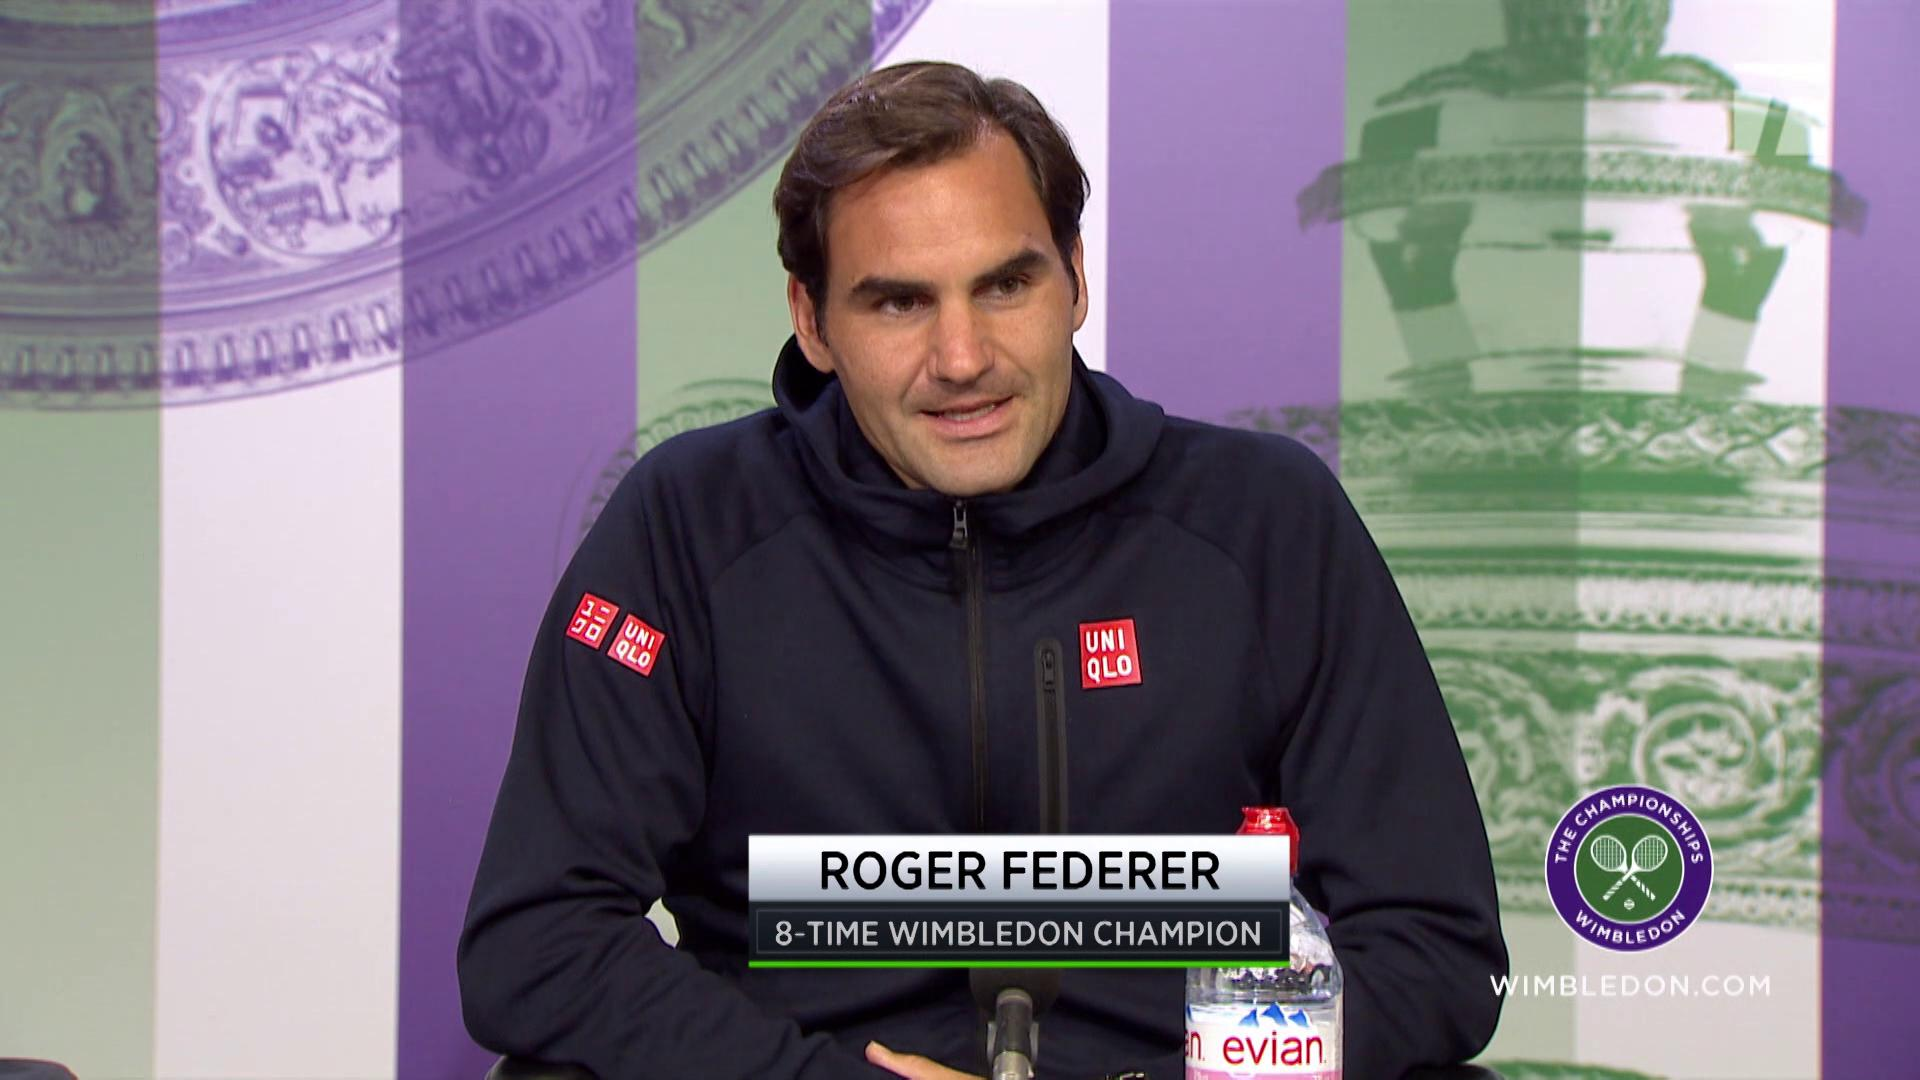 Federer S New Clothes At Wimbledon Roger Ditches Nike For Uniqlo Tennis Com Live Scores News Player Rankings